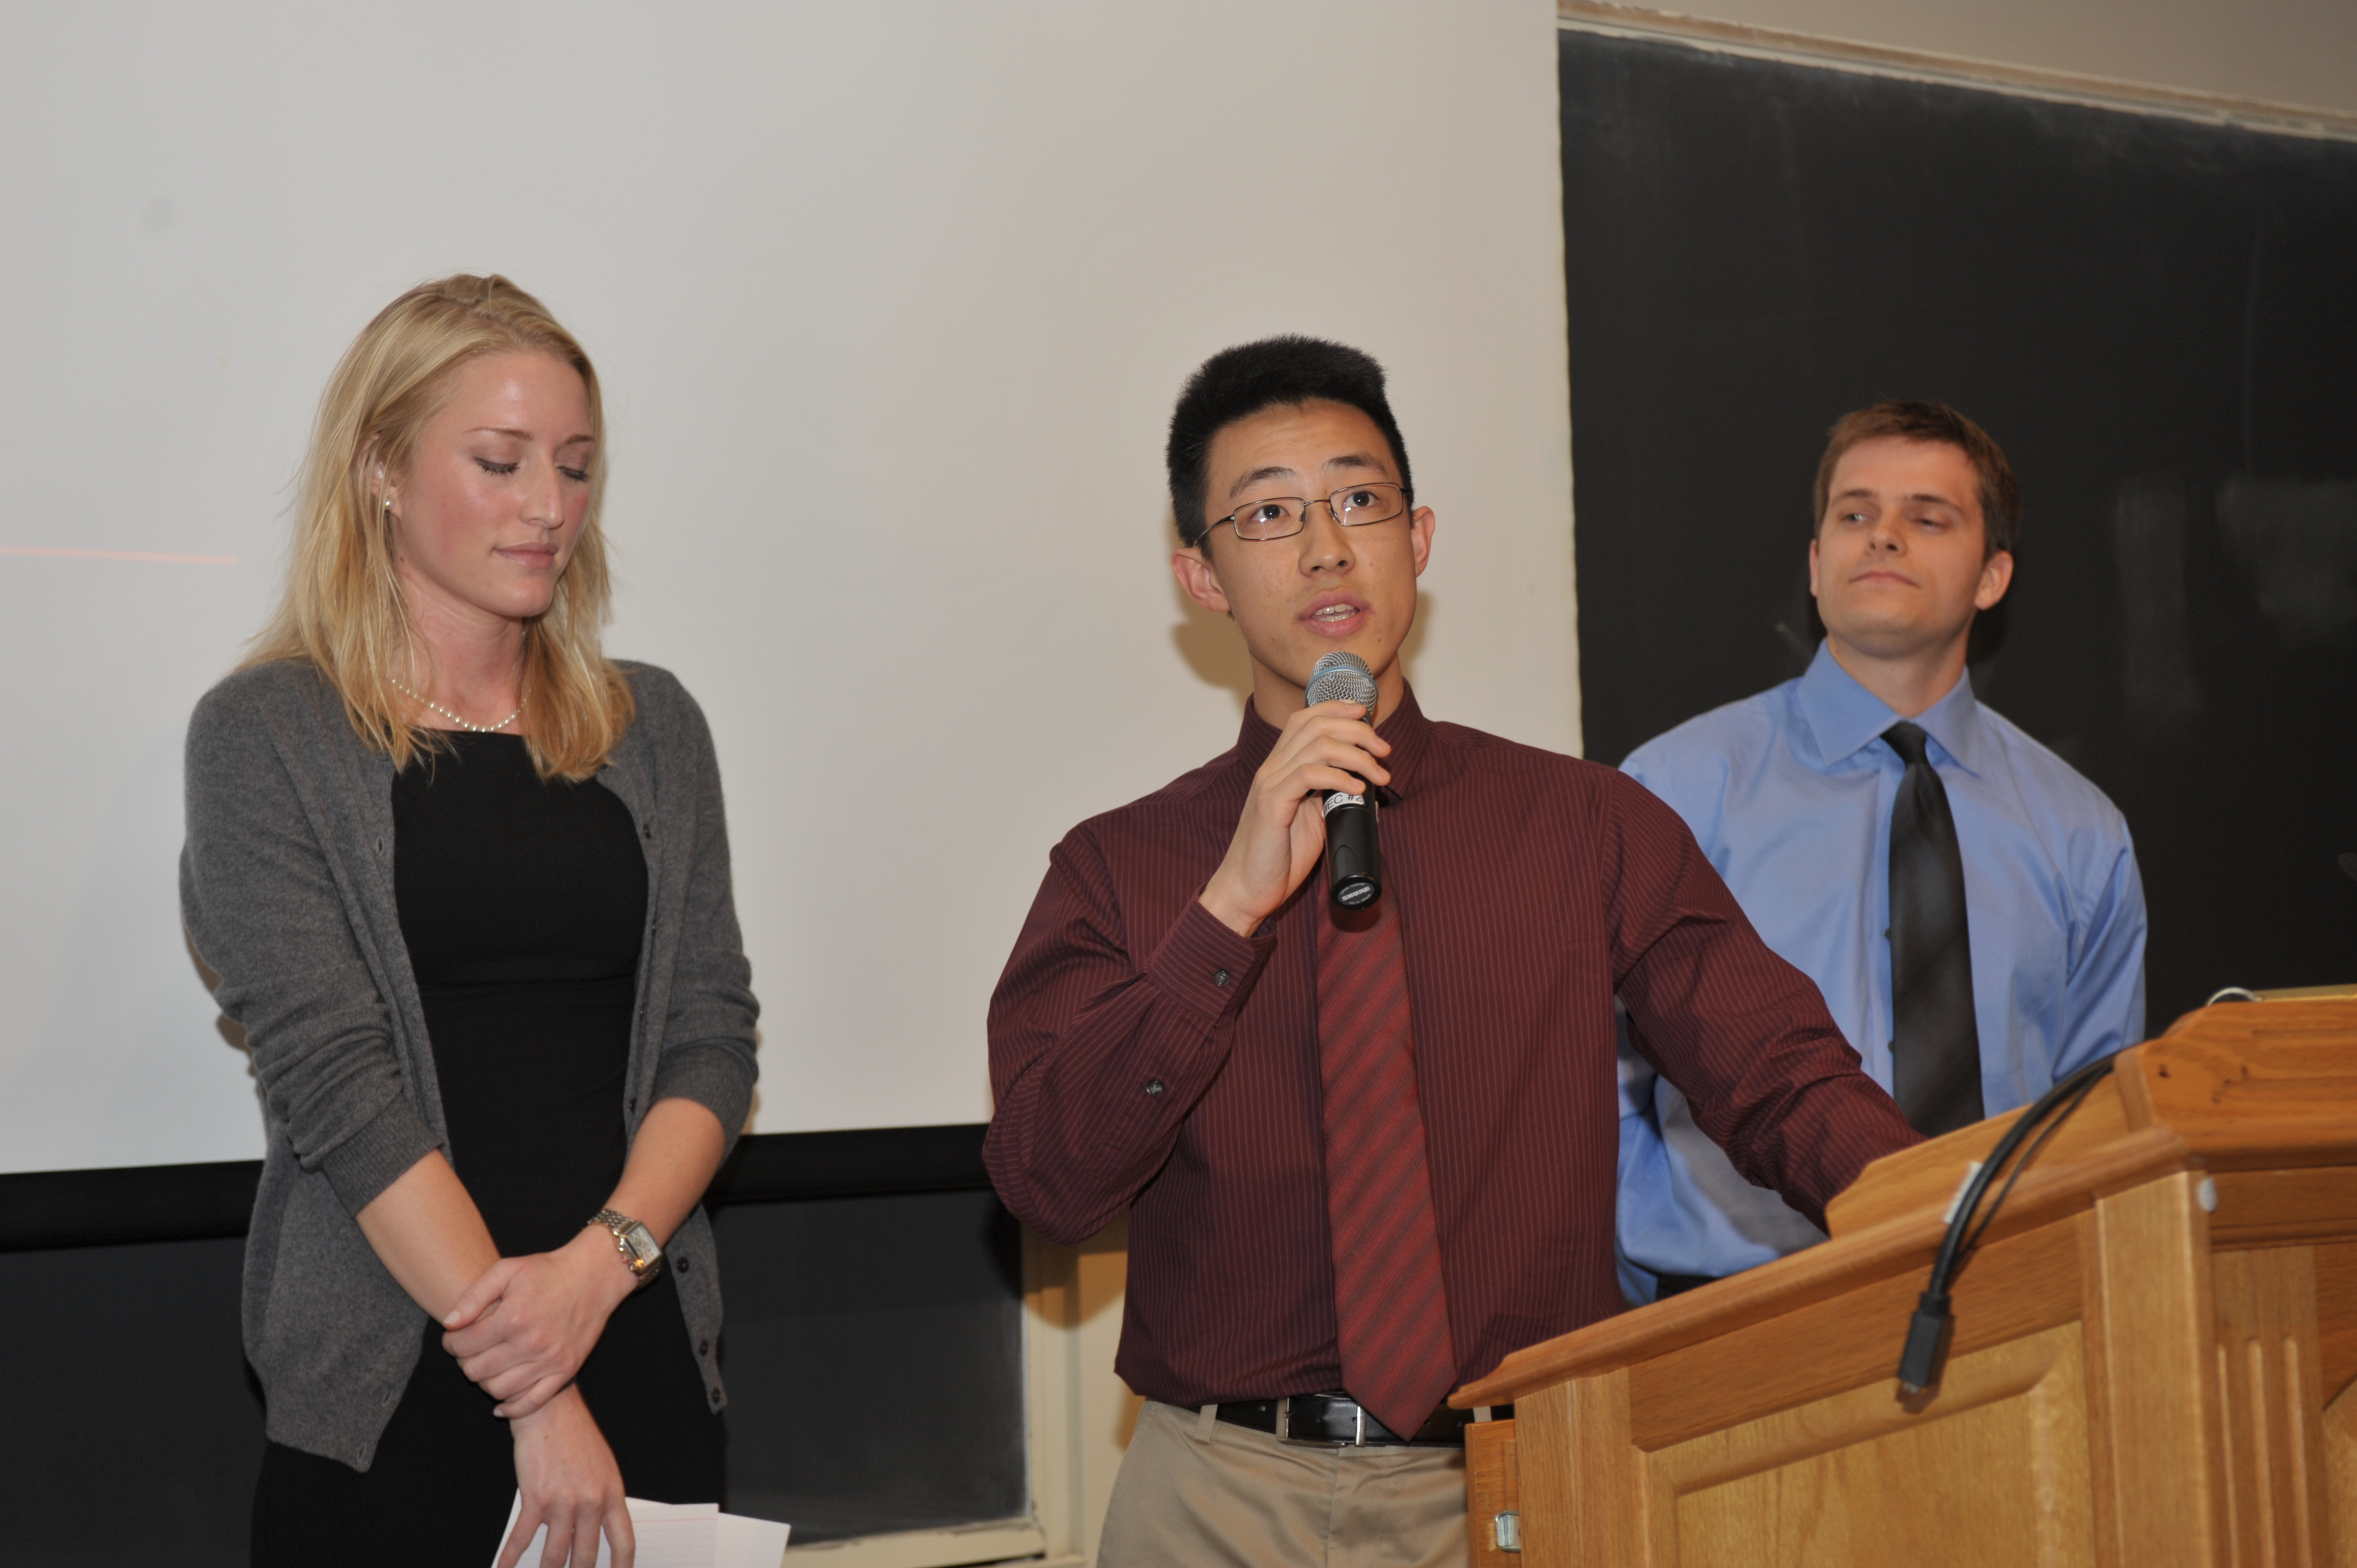 Charles Liu '15 giving introductory remarks with Morgan Freret '15 and Andrew Stamm '15. The voice of the students who nominated teachers were heard by the selection committees. Photo by Steve Gilbert.